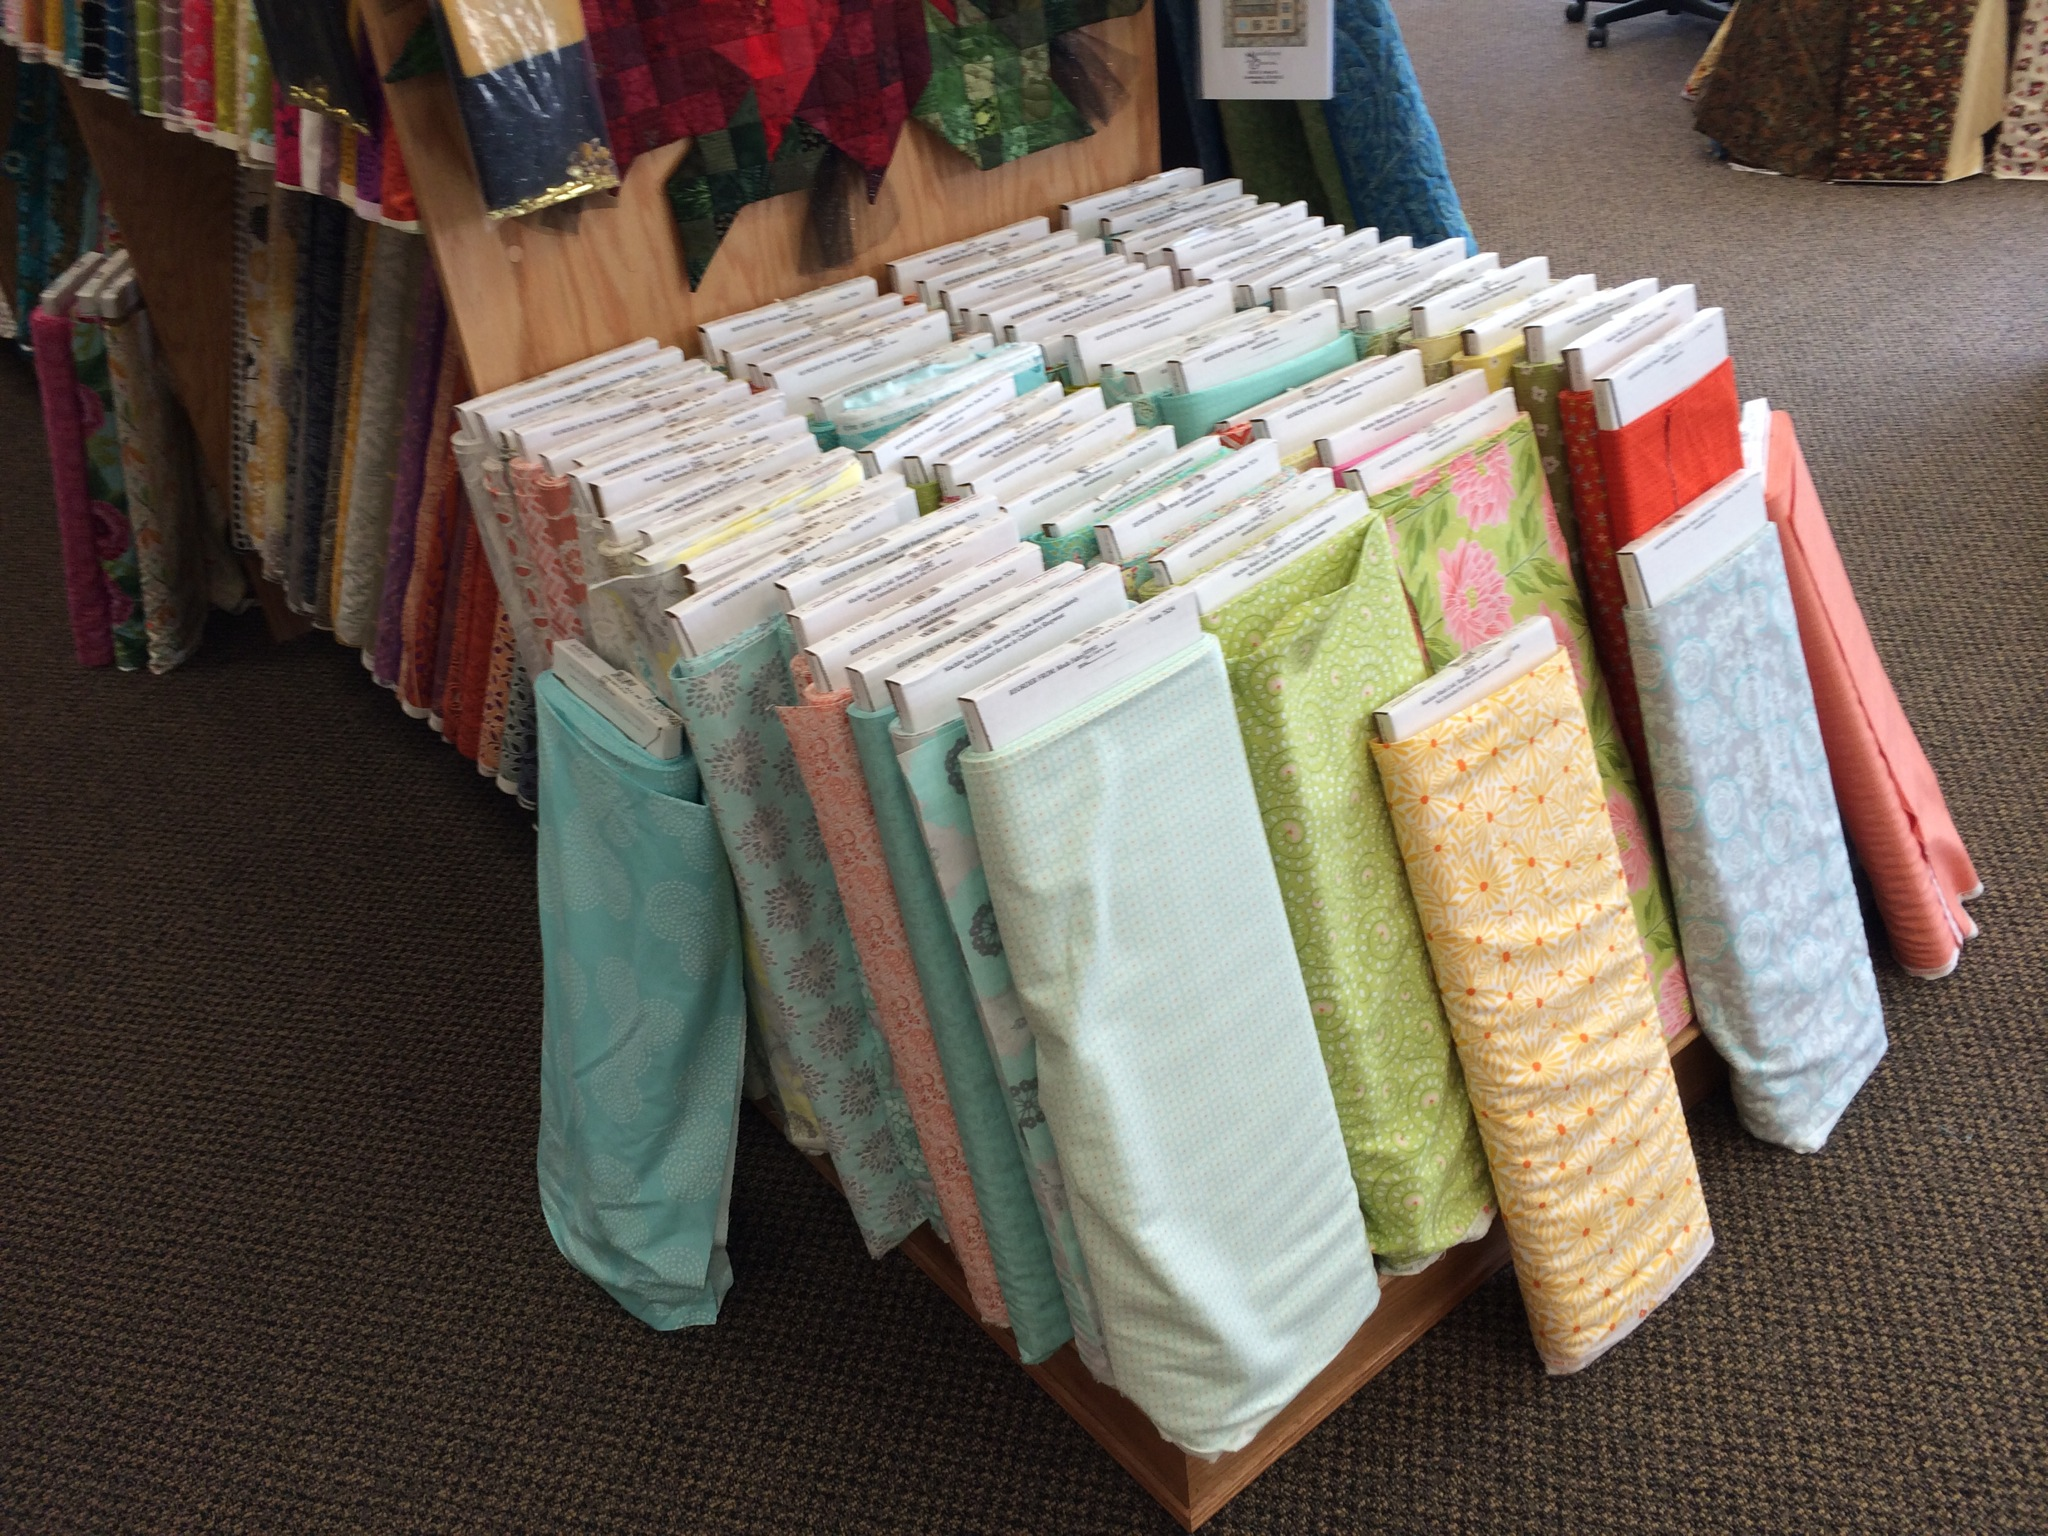 A Local Quilt Shop Trip - Quilters Quest in Woodridge, IL